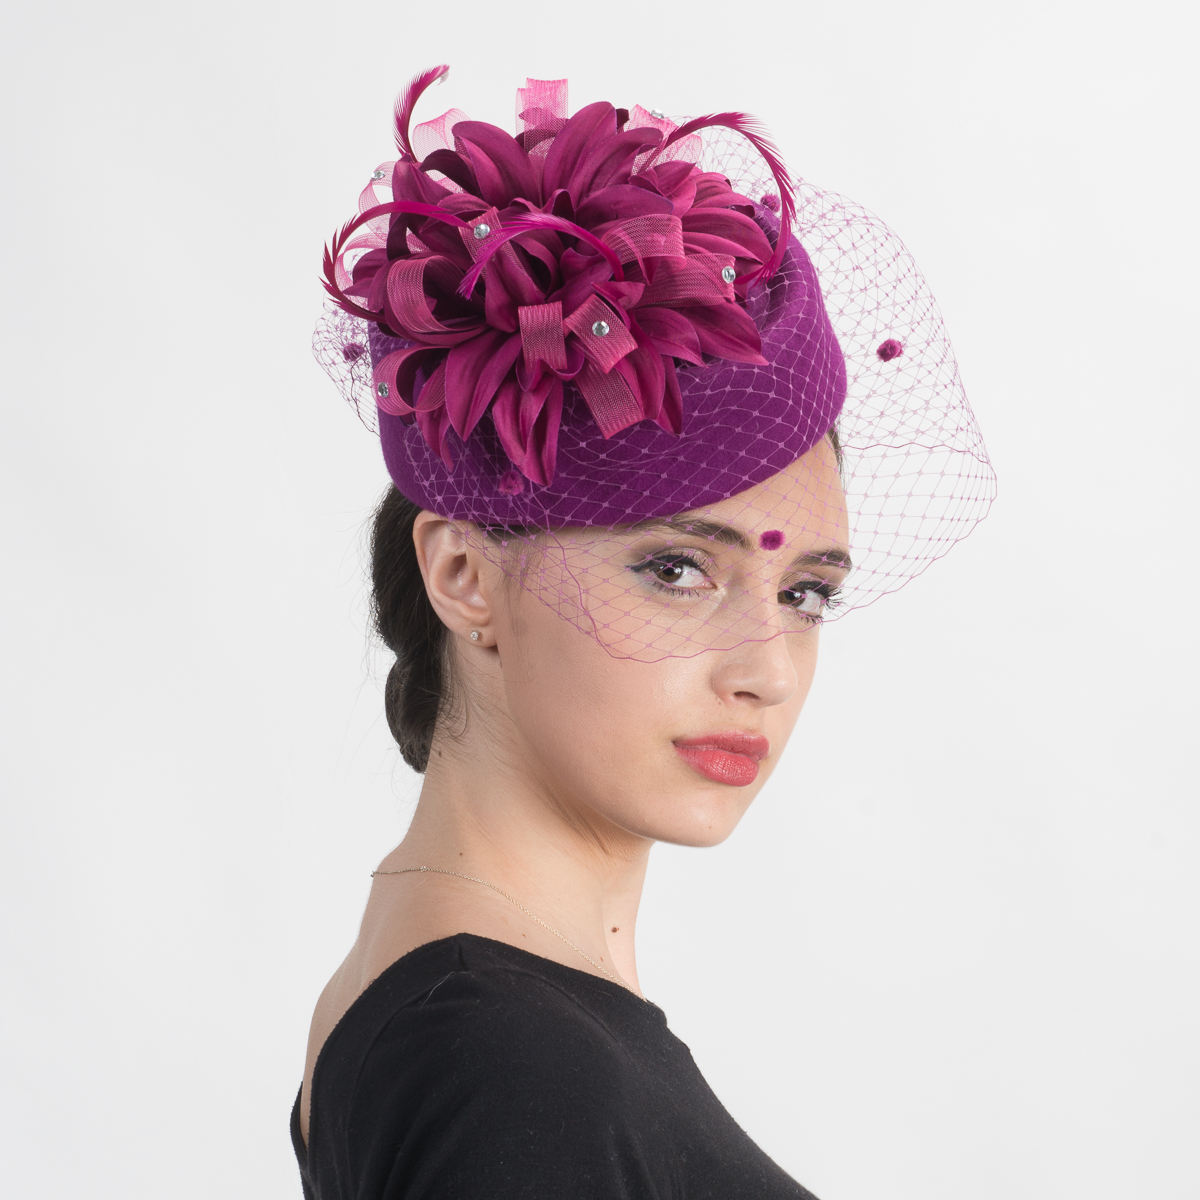 c91a3ba26 Fuchsia Flower Face Veil Pillbox Wool Felt Hats